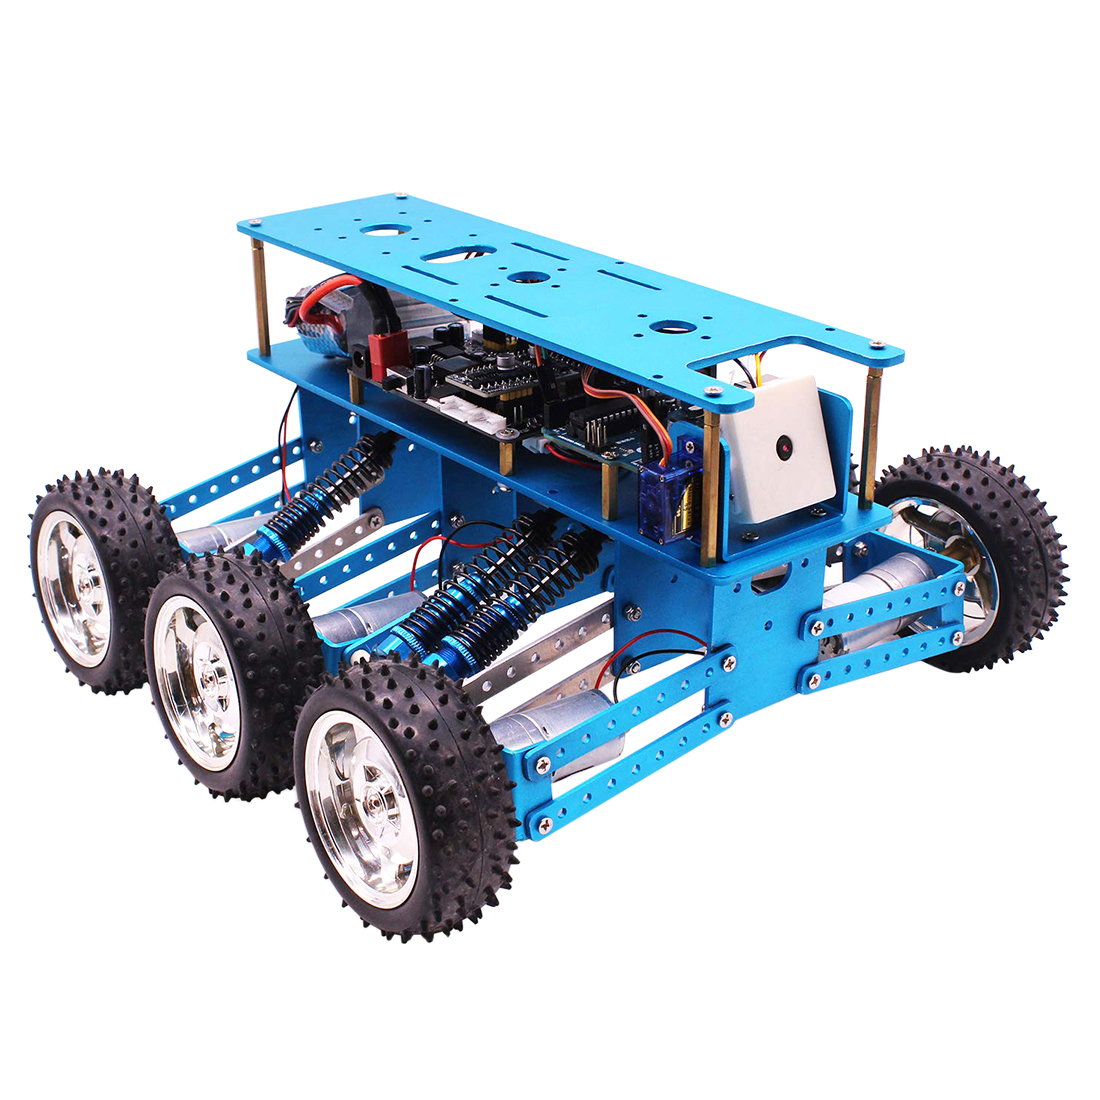 High Tech 6WD Off-Road Robot Car Camera For Arduino DIY Robot For Programming Intelligent Programmable Toy Education Learning